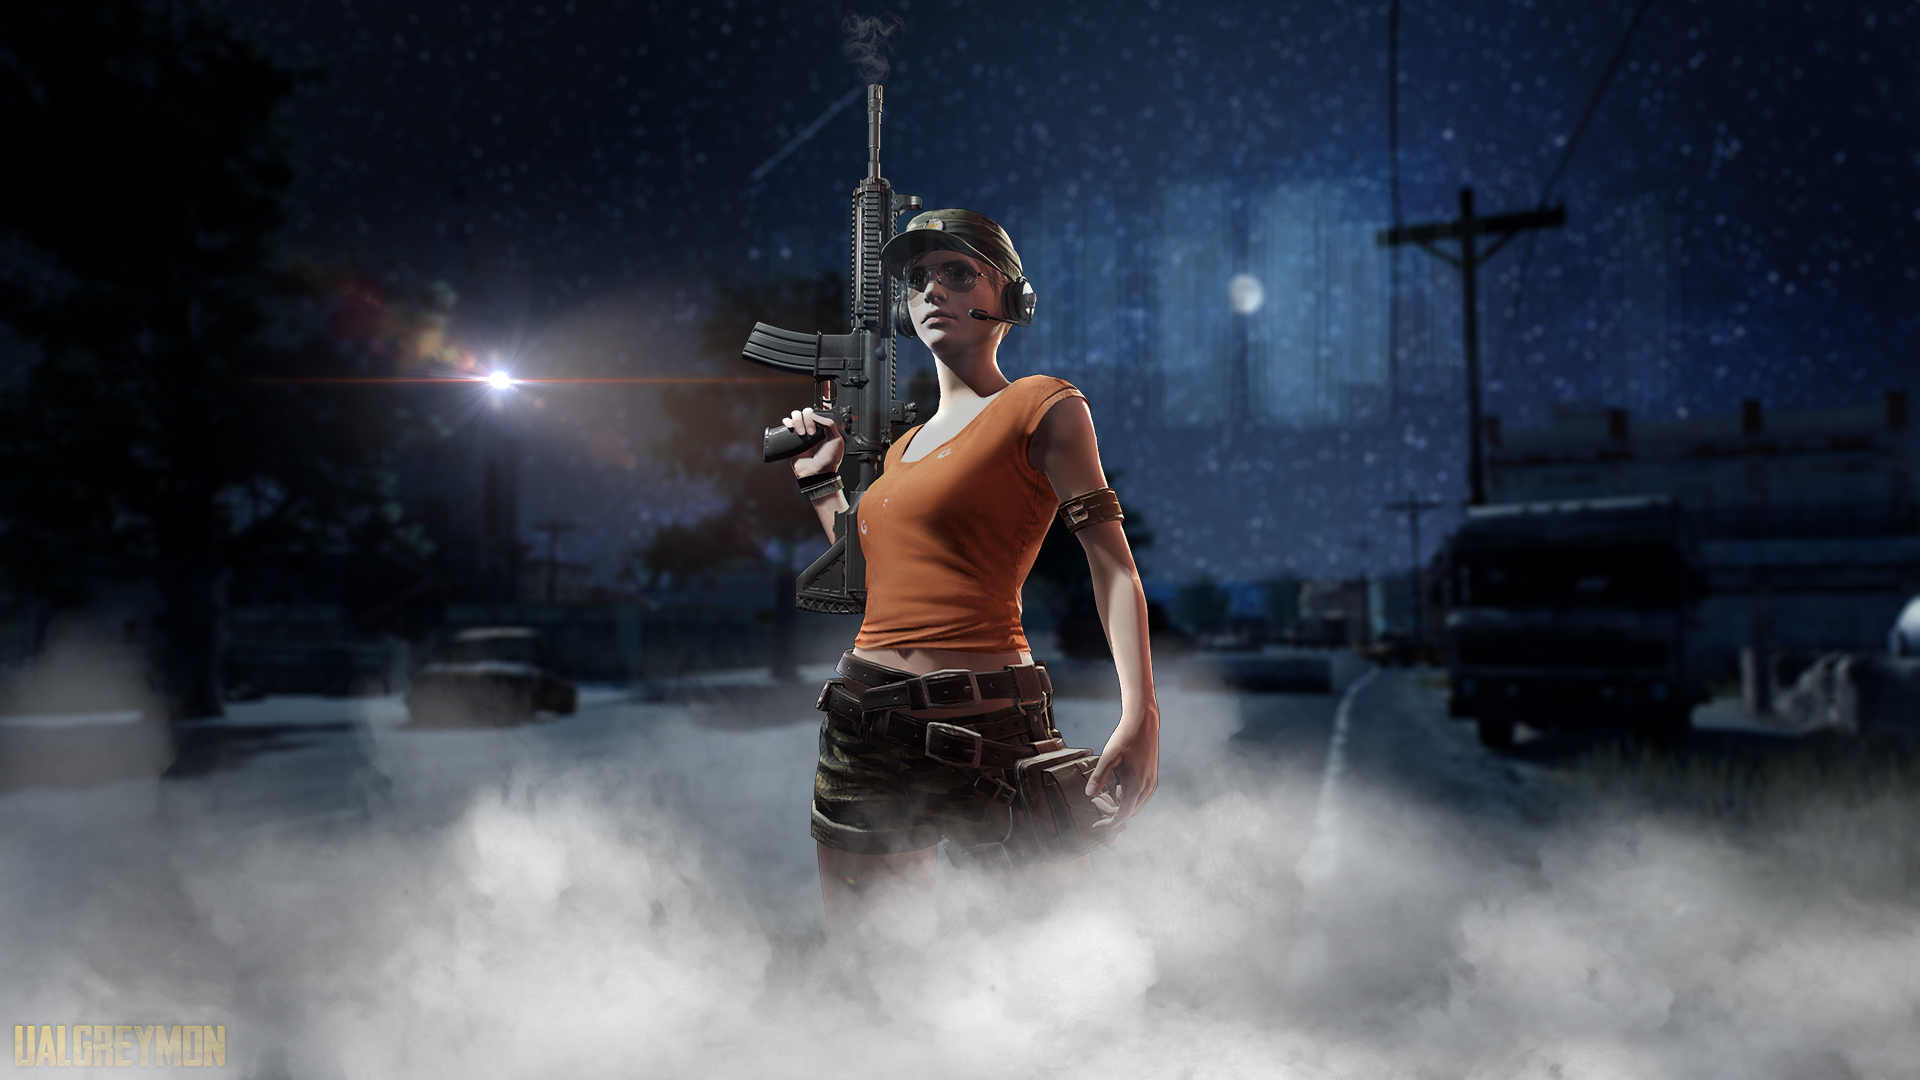 1920x1080 Pubg Night Laptop Full HD 1080P HD 4k Wallpapers